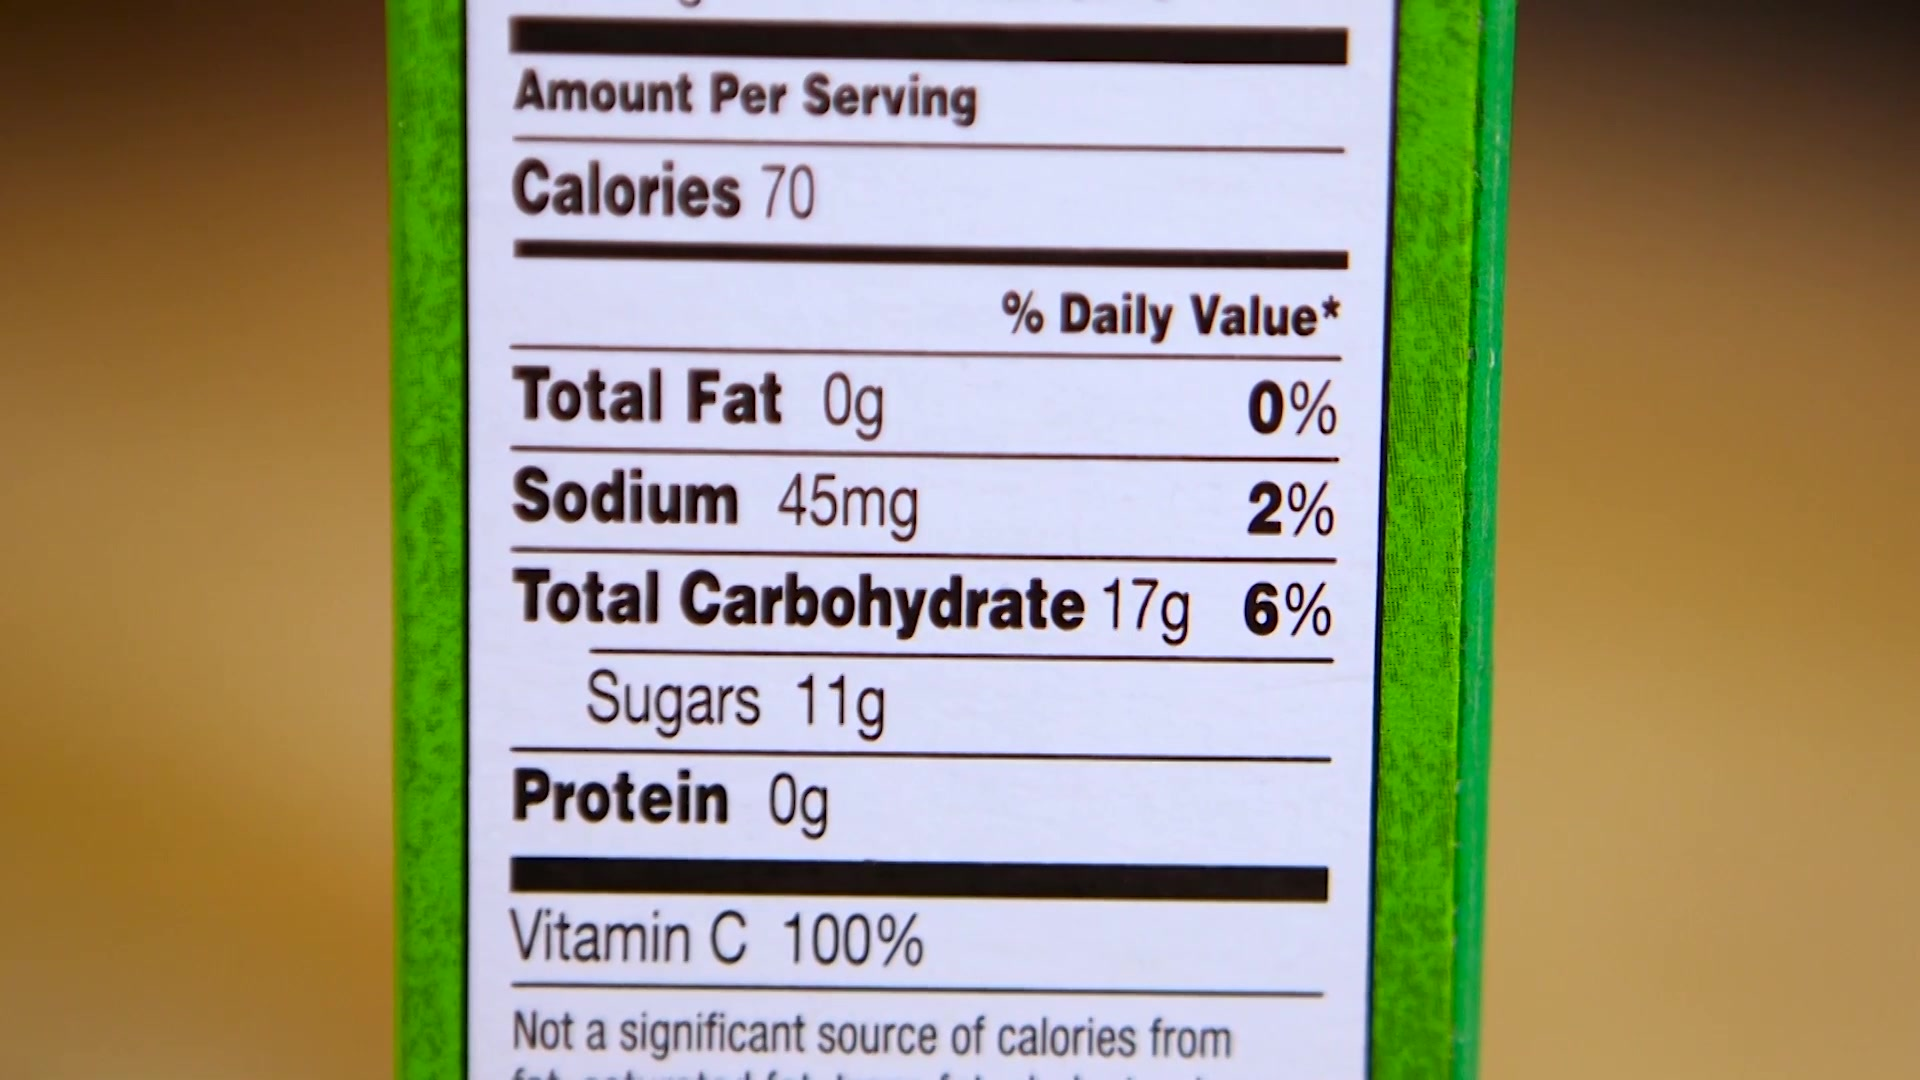 Decoding Food Label Claims - A Diabetic Guide to Grocery Shopping